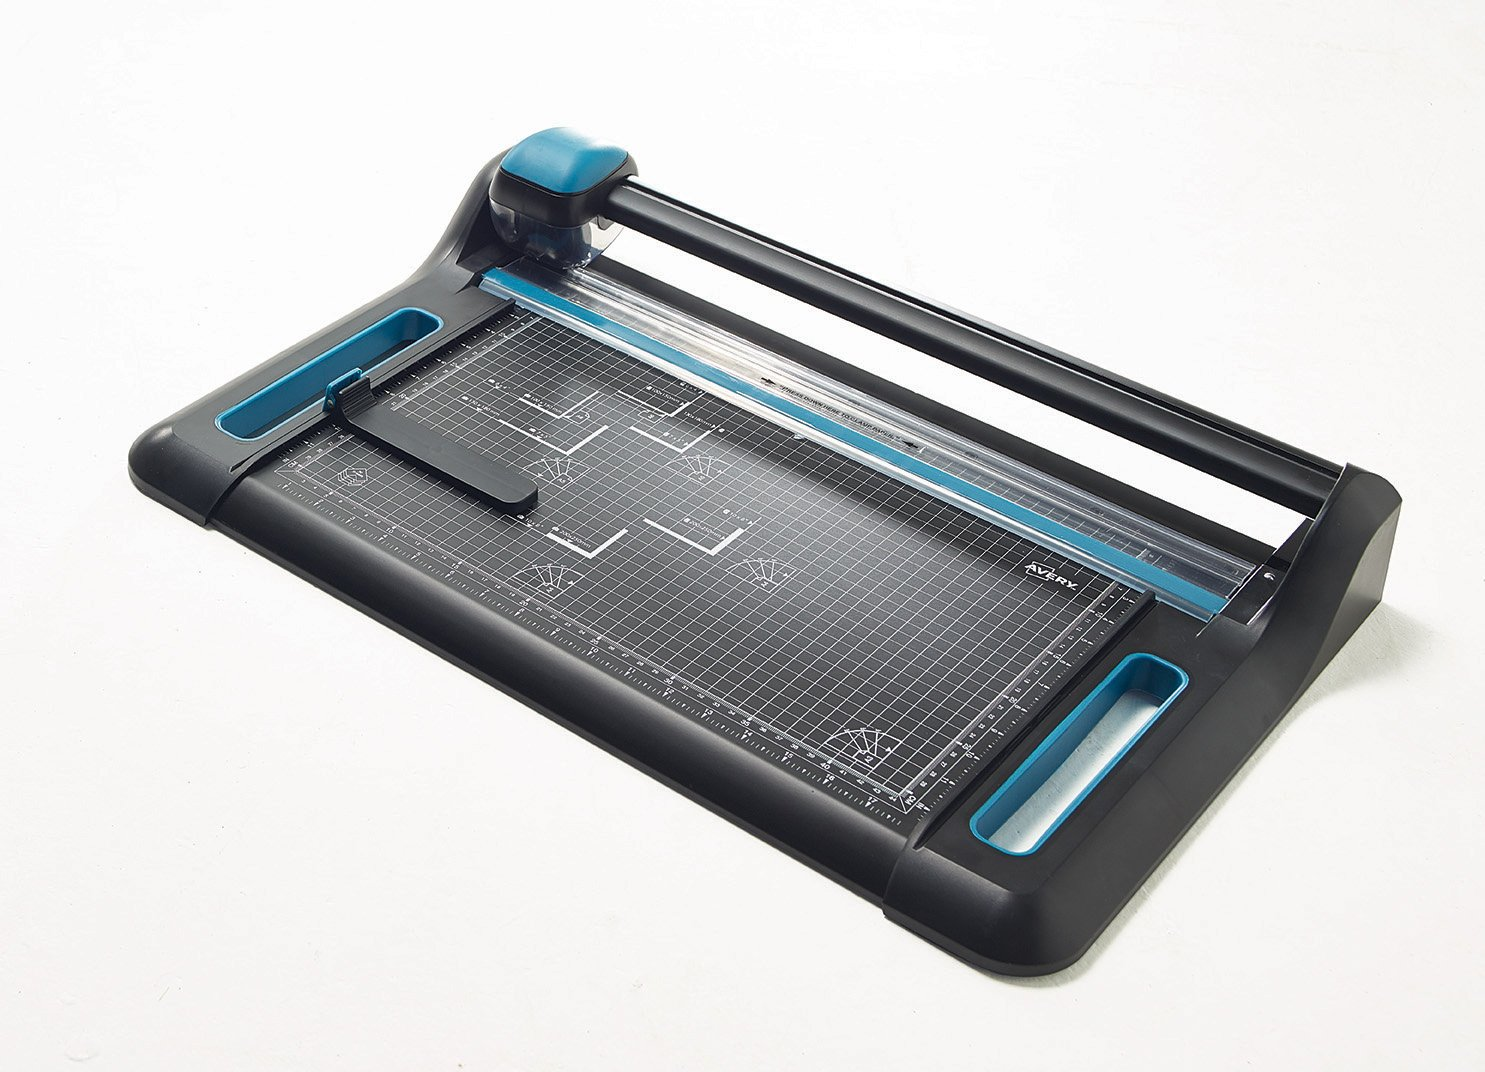 Avery A3 P460 Precision Trimmer Paper Cutter, Black and Teal